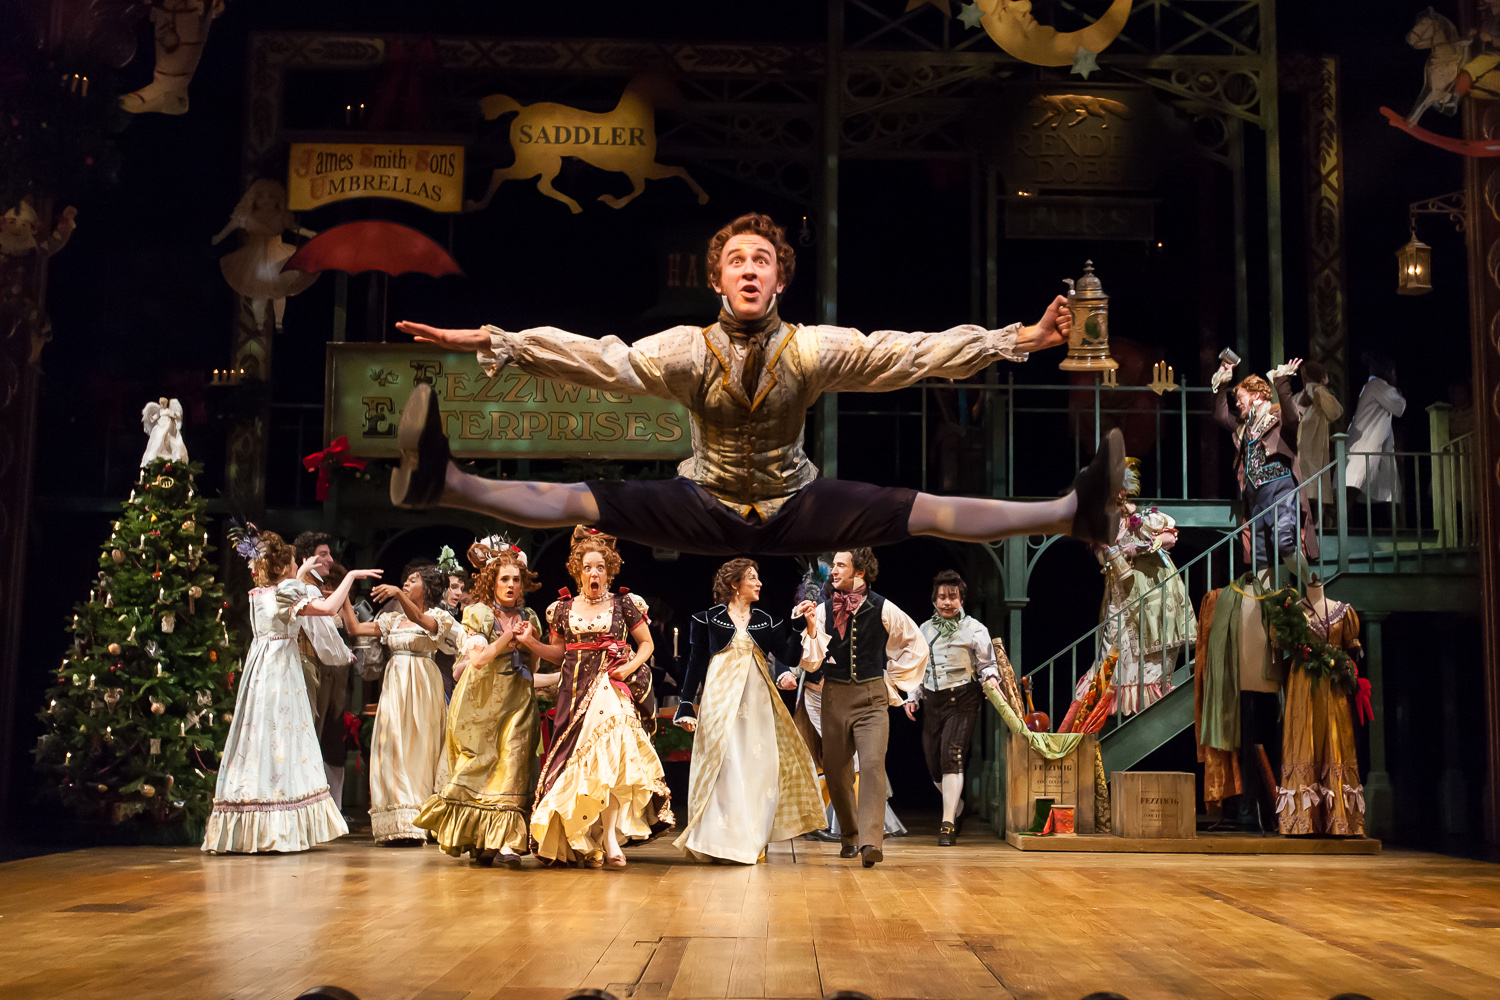 One of my all time favorite photos! All credit for this amazing capture goes to my assistant, who was 14 years old at the time, and a former cast member of this production at the Denver Center Theatre Company. Allen Dorsey, above, captured mid-leap in the Fezziwig scene of A CHRISTMAS CAROL. Photo by Gabe Koskinen, Merritt Design Photo